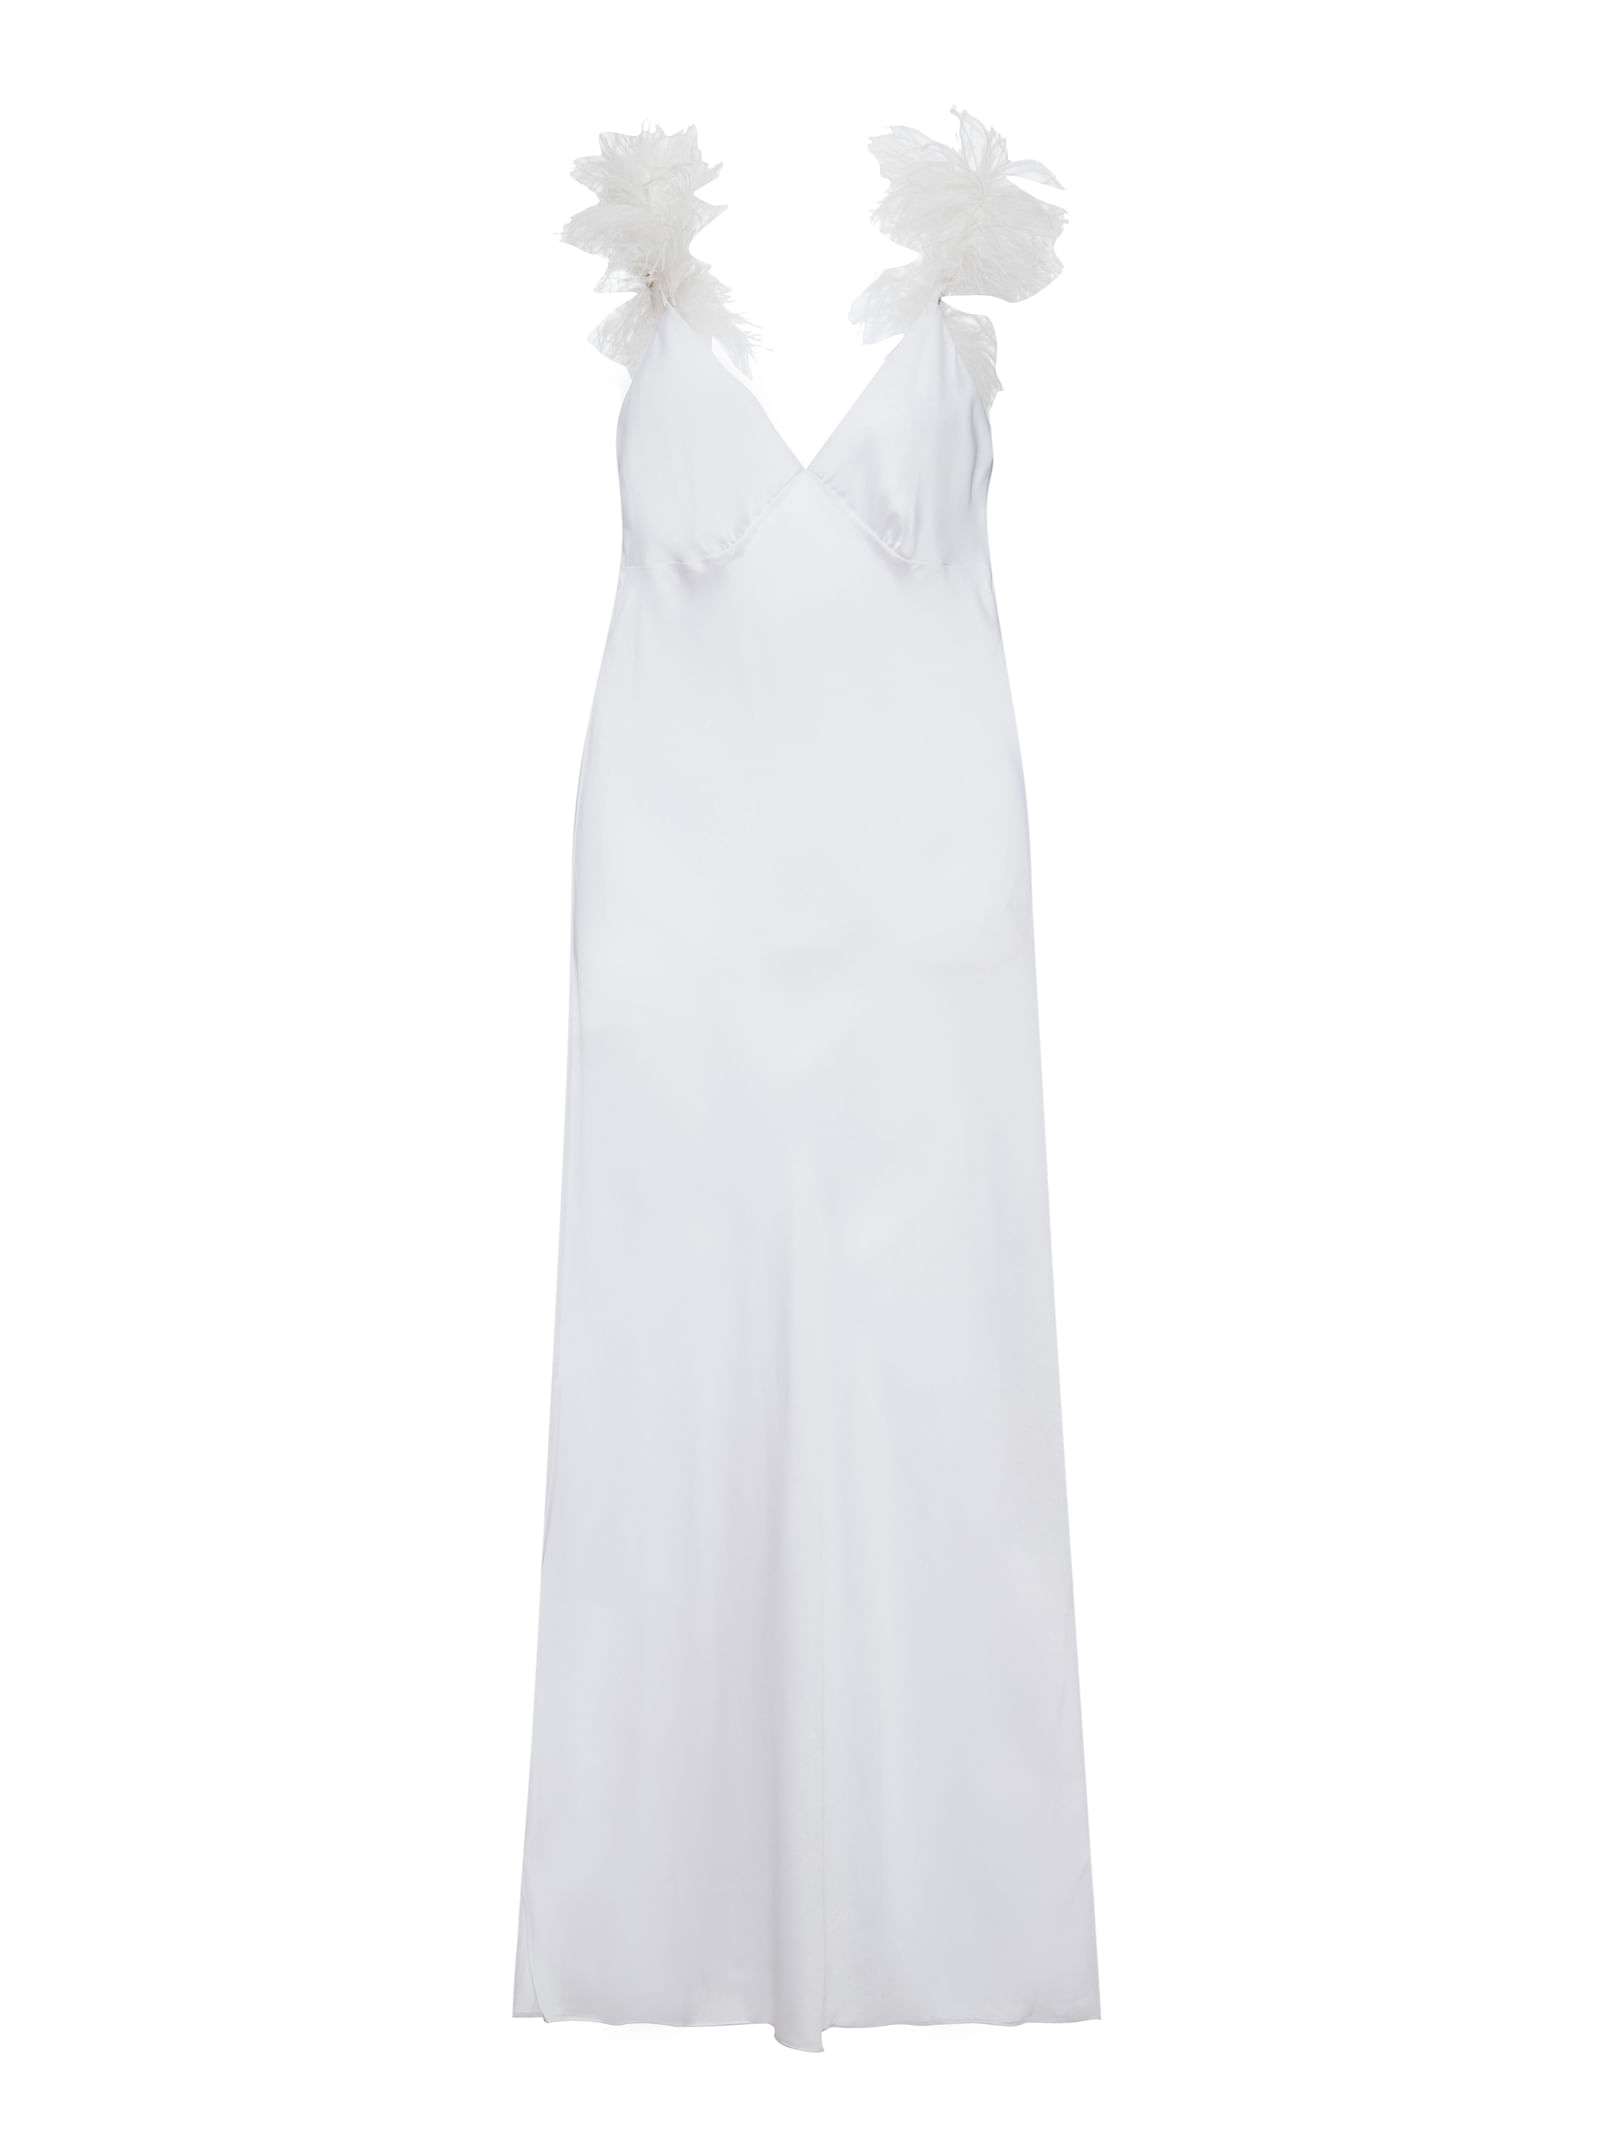 35050183_001_2-CAMISOLA-LG-SMG-CETIM-BRIDE-TO-BE